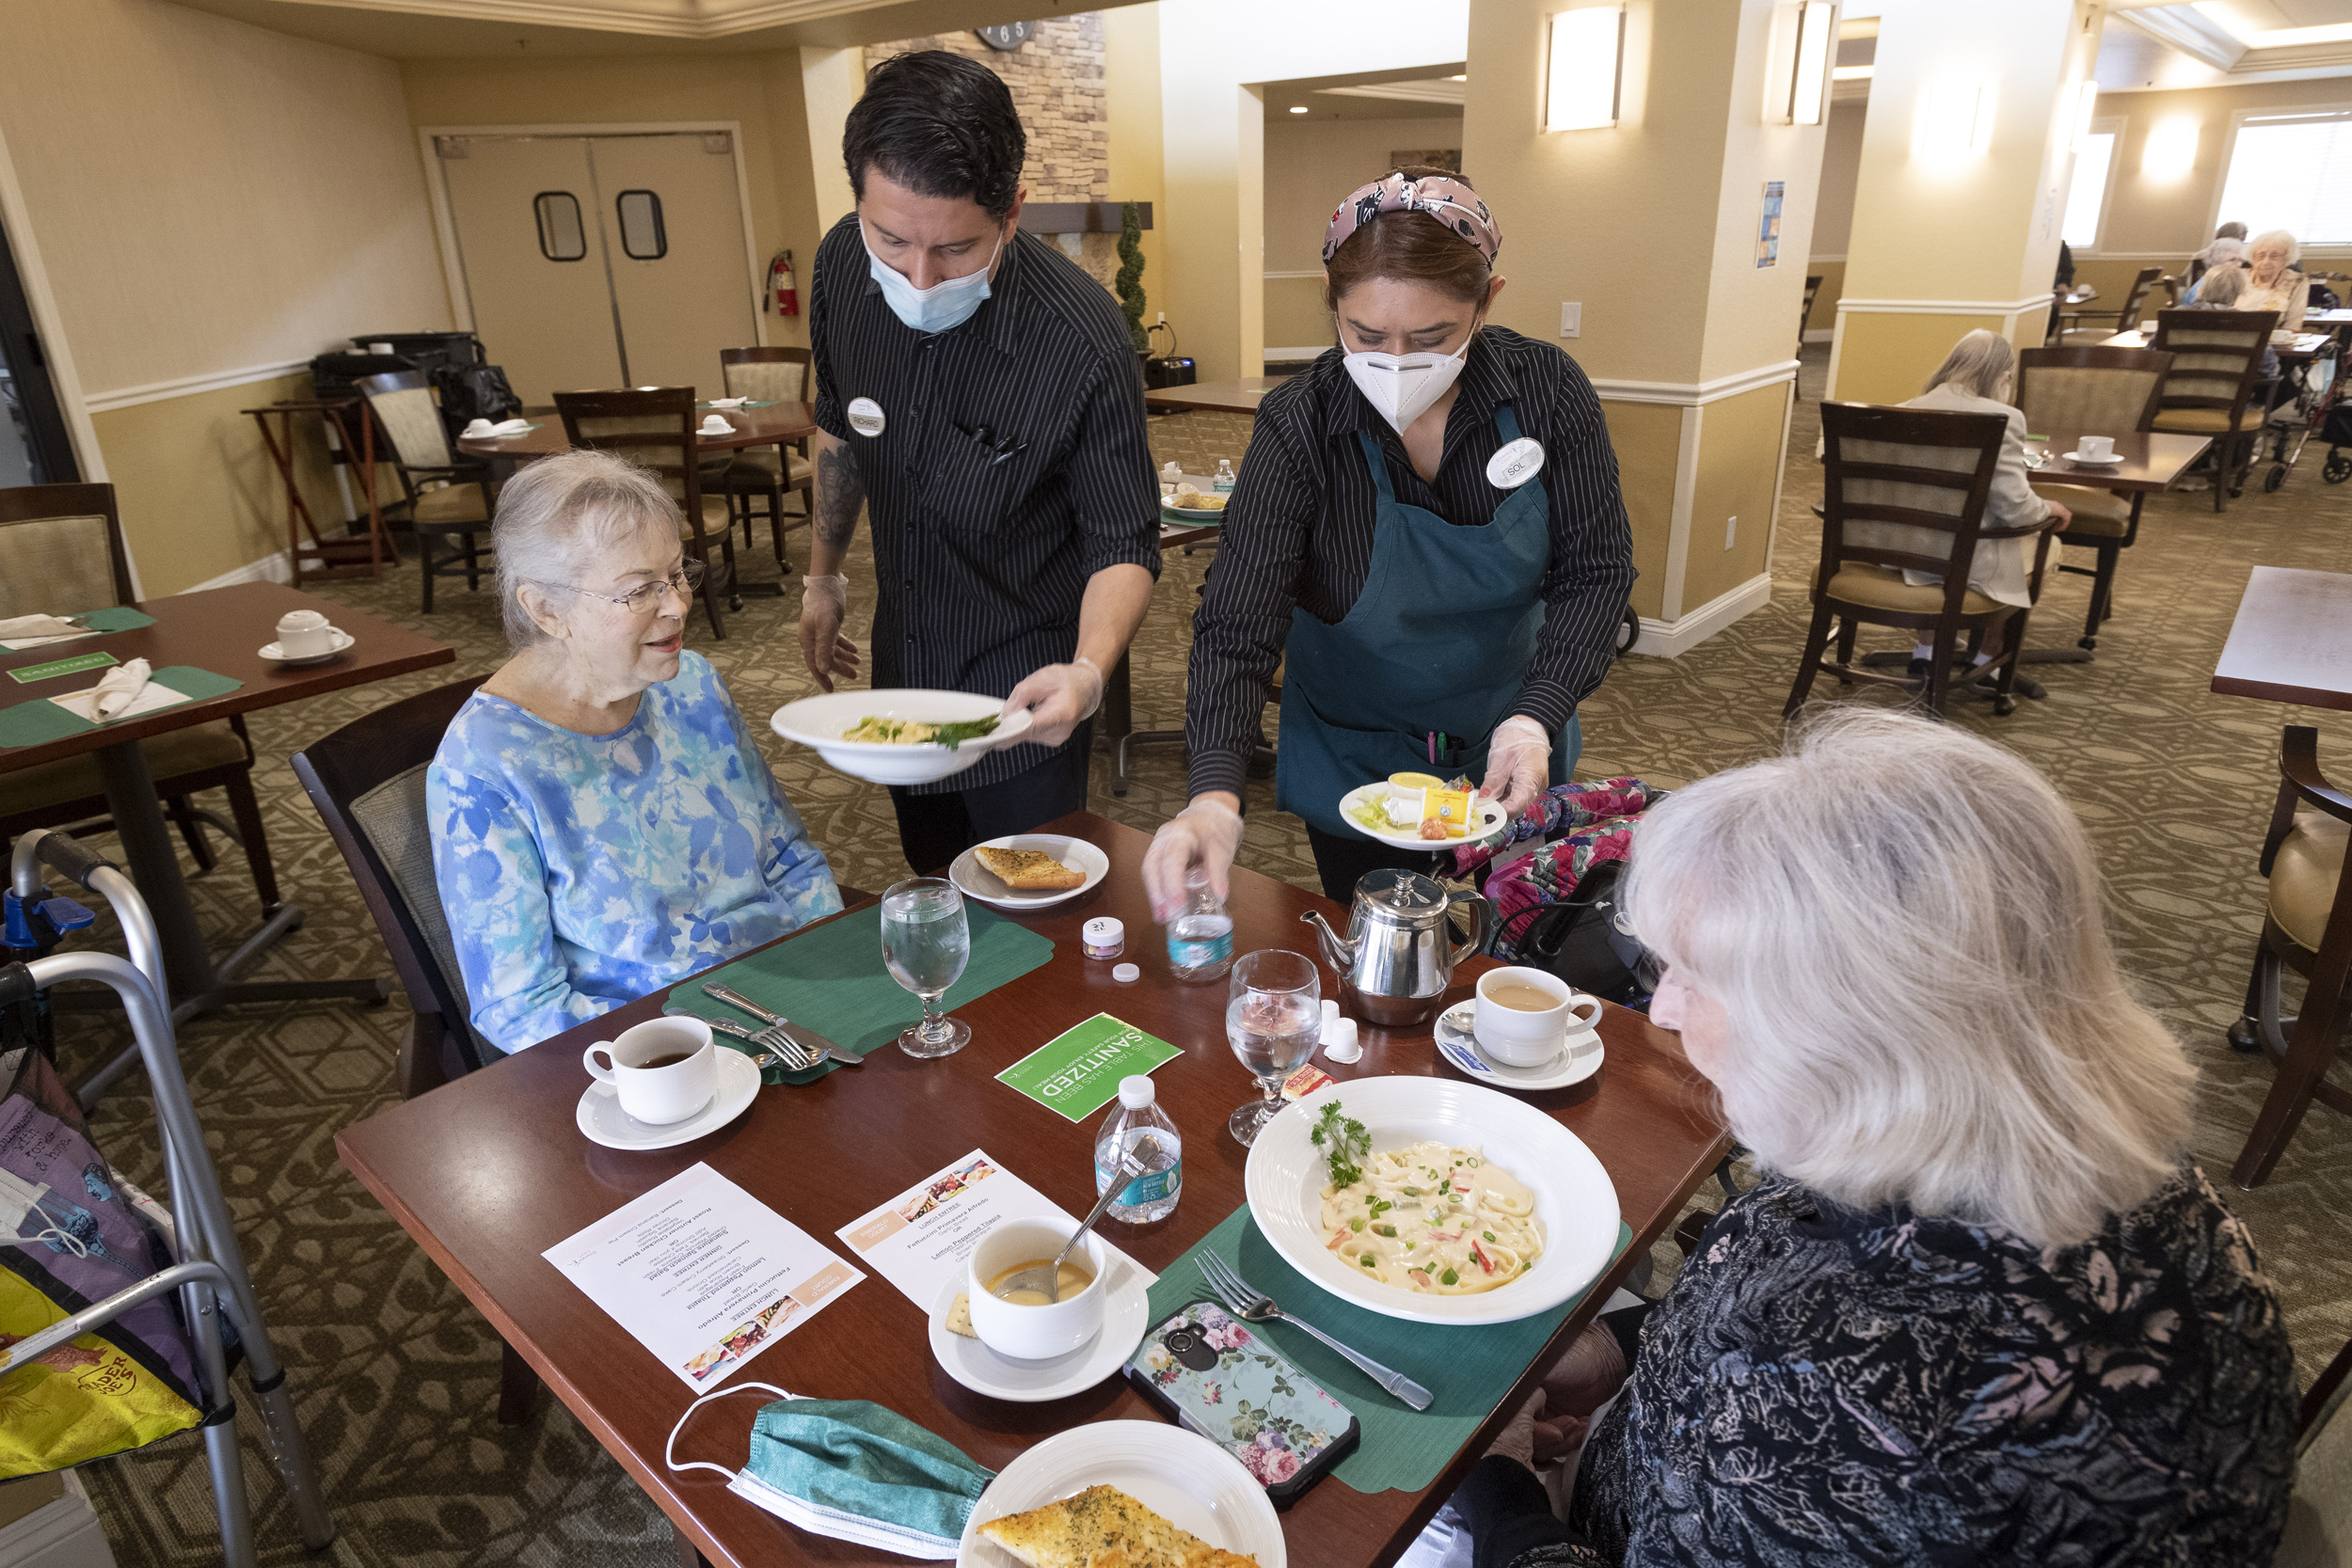 Biden to require nursing homes mandate vaccinations for staff or lose federal funds